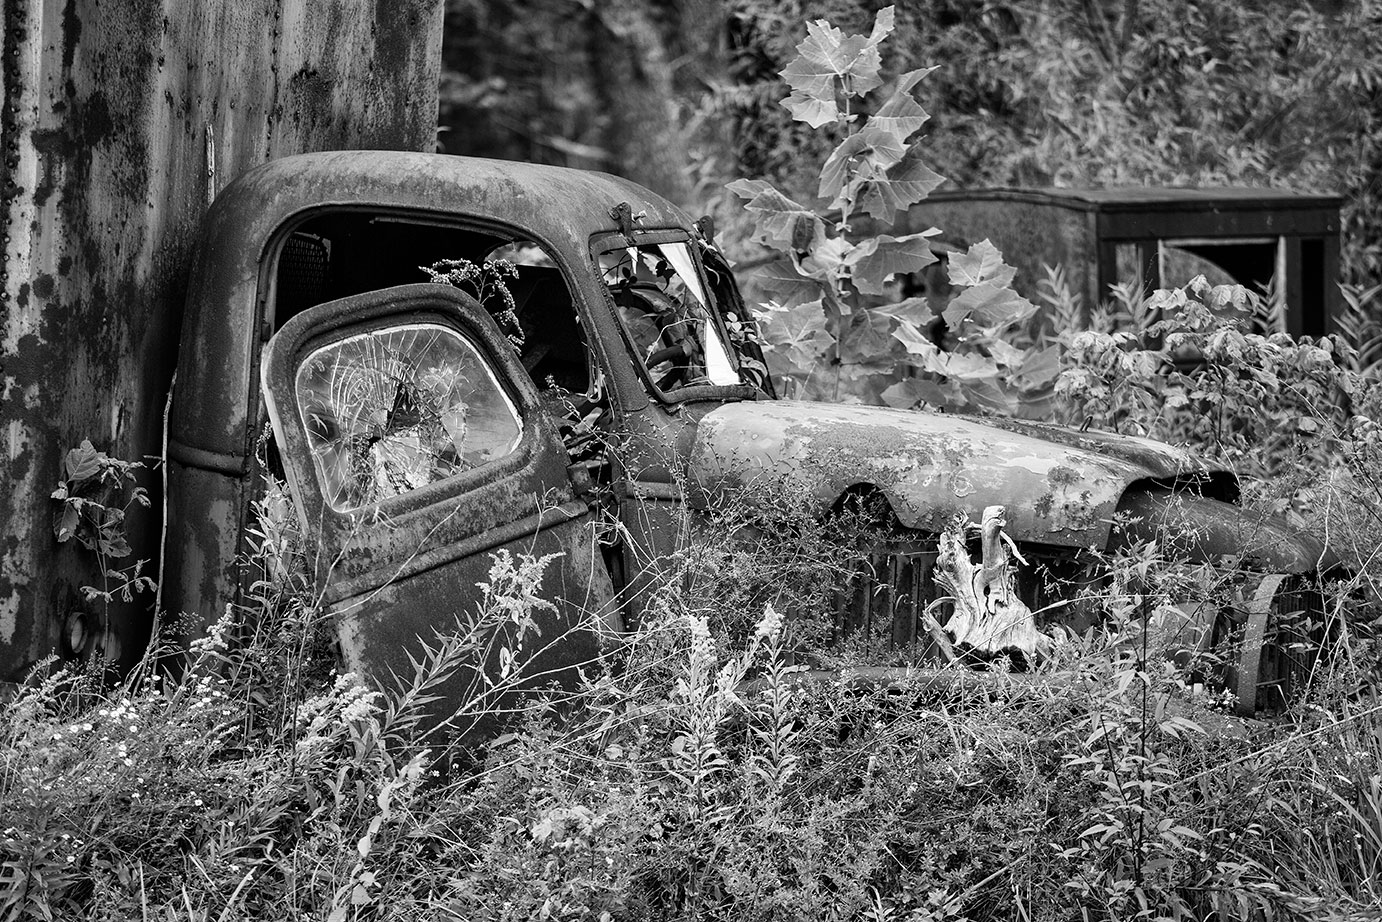 A rusty gem collapsing among the overgrown grass and weeds.